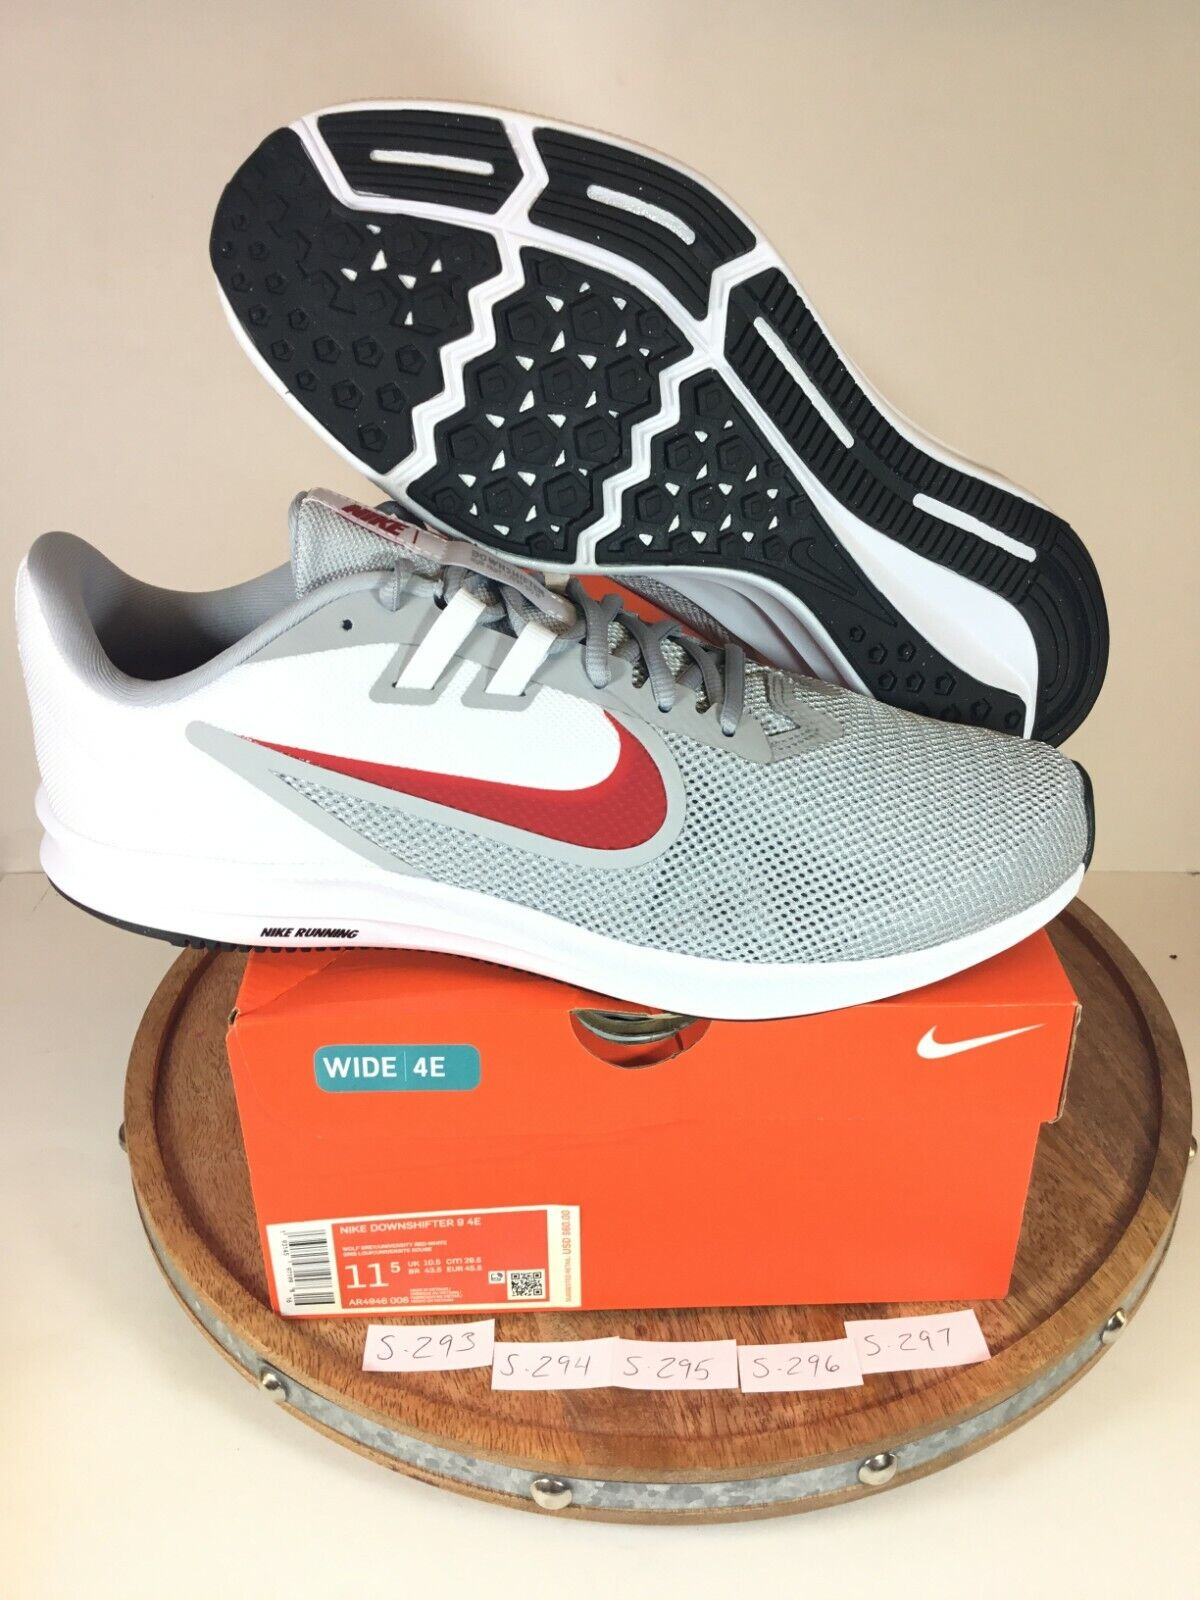 Nike Downshifter 9 Mens Running SNEAKERS Shoes Gray Ar4946 006 Size 11 Wide  4e